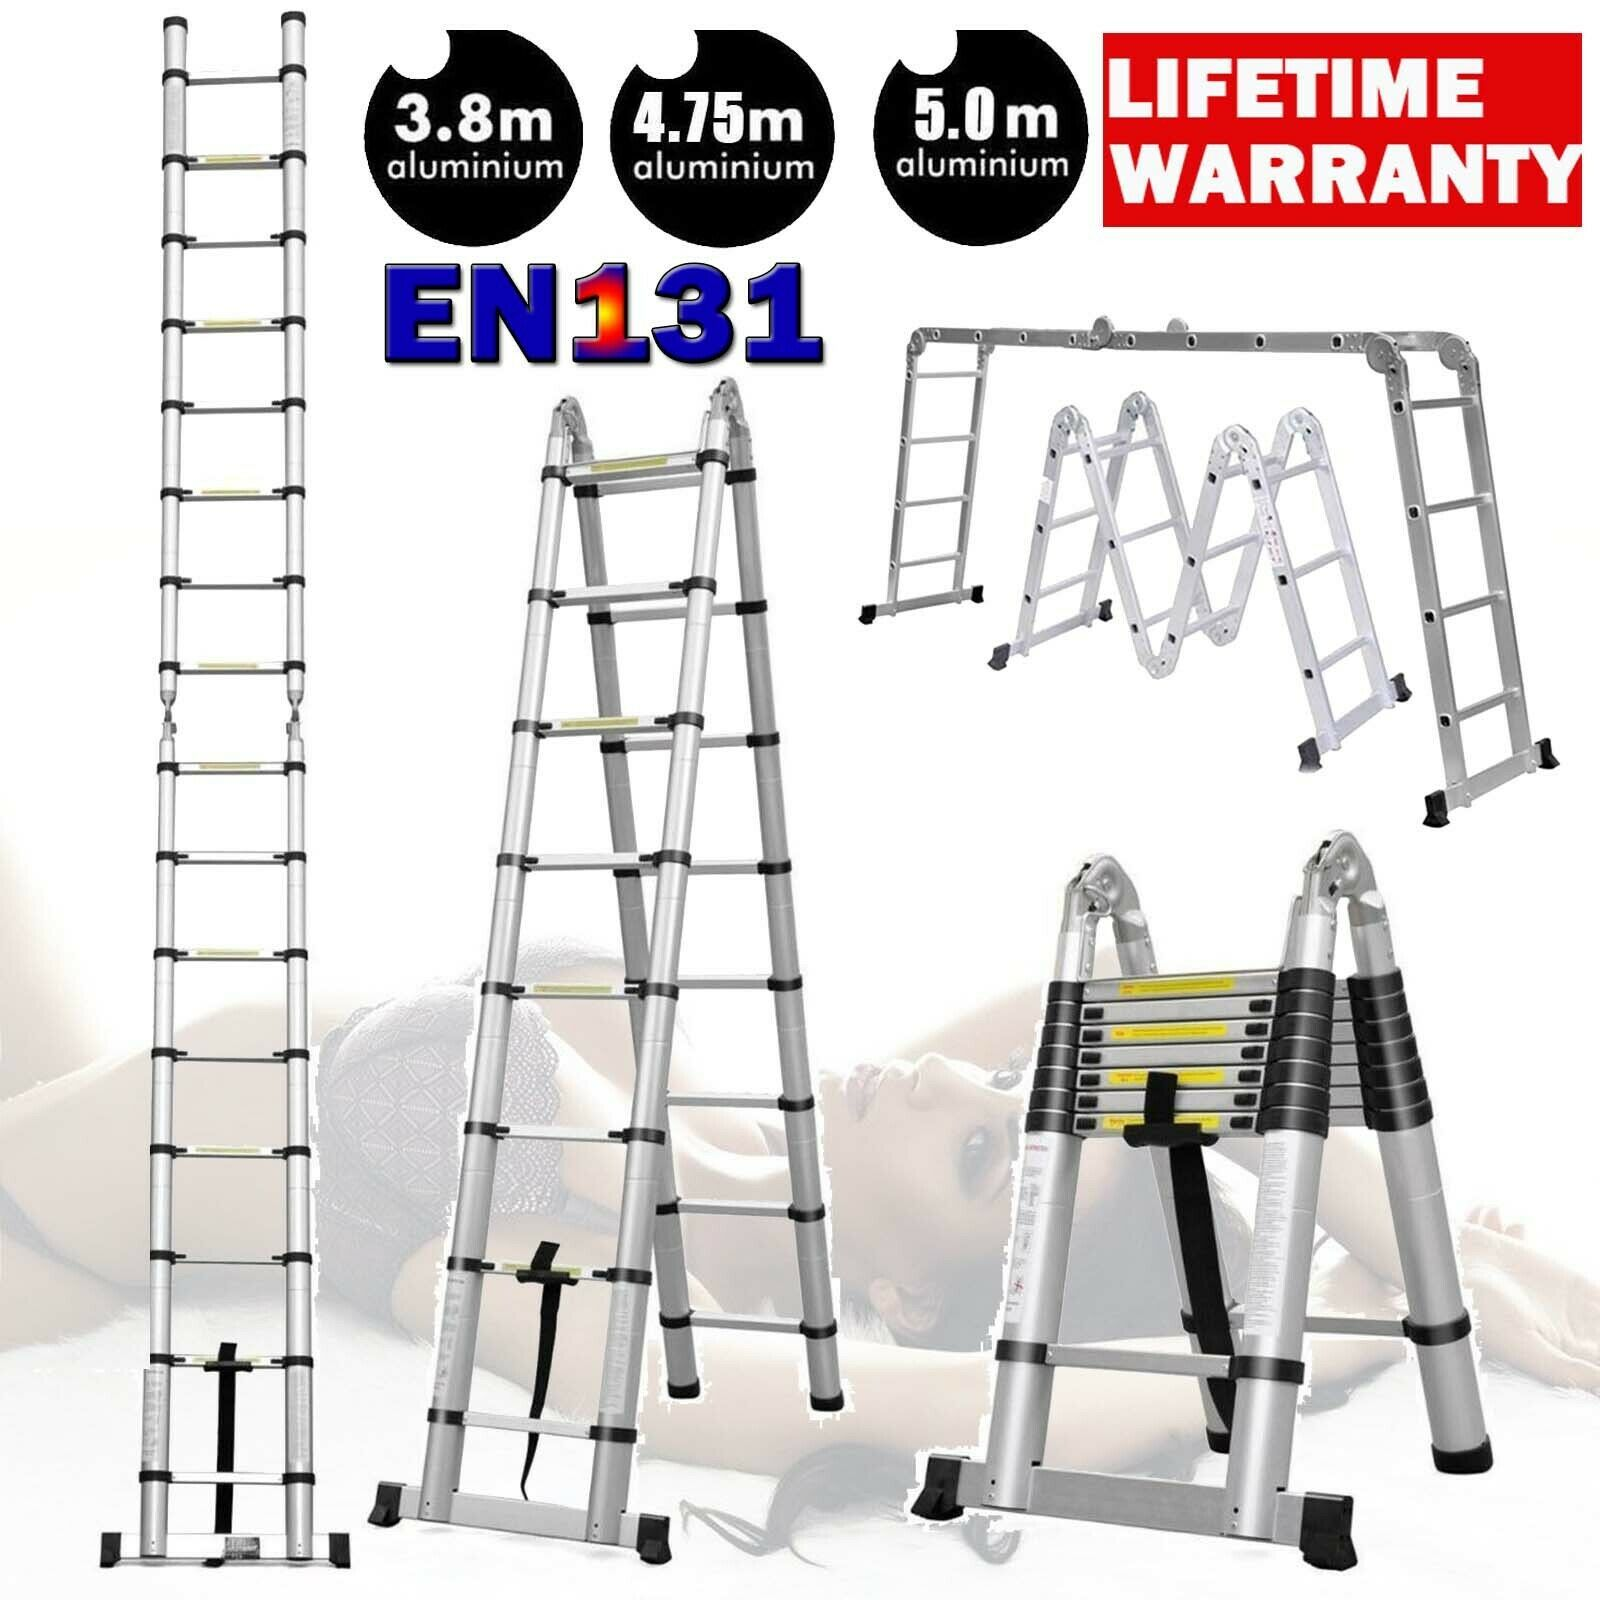 Scaffold Ladder Heavy Duty Giant Aluminum 10 17 Feet 330lb Multi Purpose Extend Ladder Decor Ladderdecor